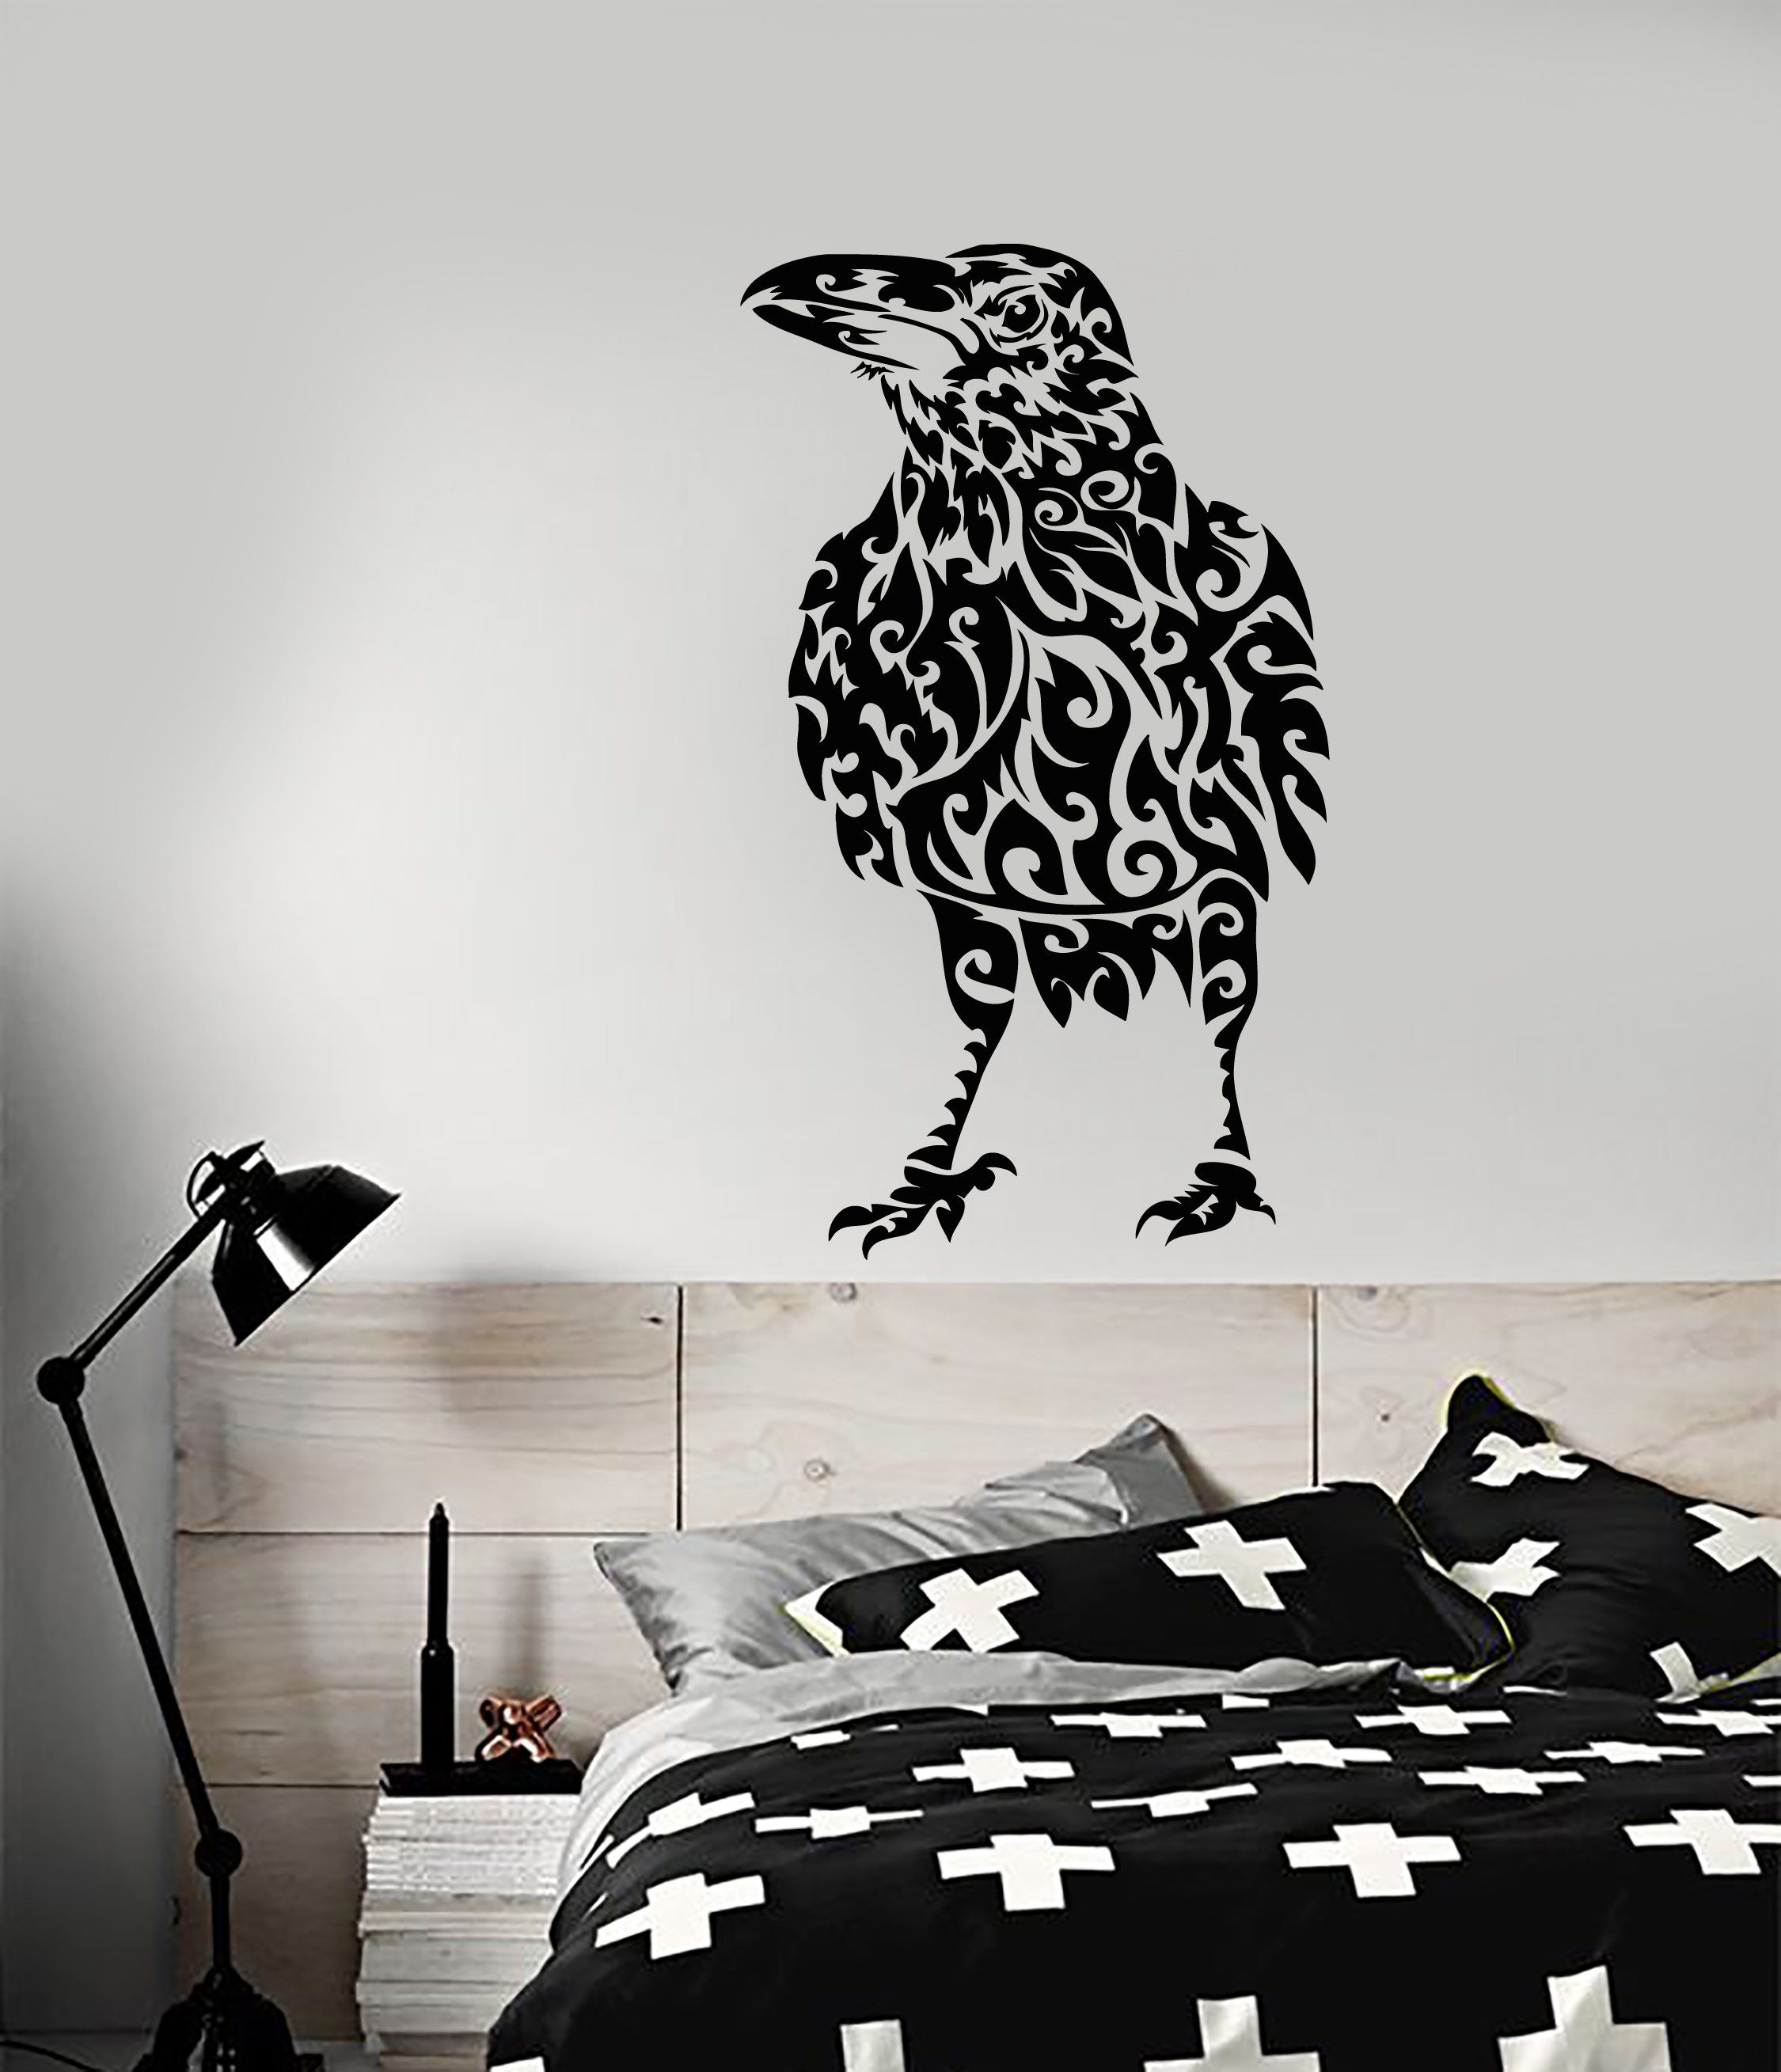 Vinyl Wall Decal Abstract Raven Bird Gothic Style Stickers (2261ig) & Vinyl Wall Decal Abstract Raven Bird Gothic Style Stickers (2261ig ...